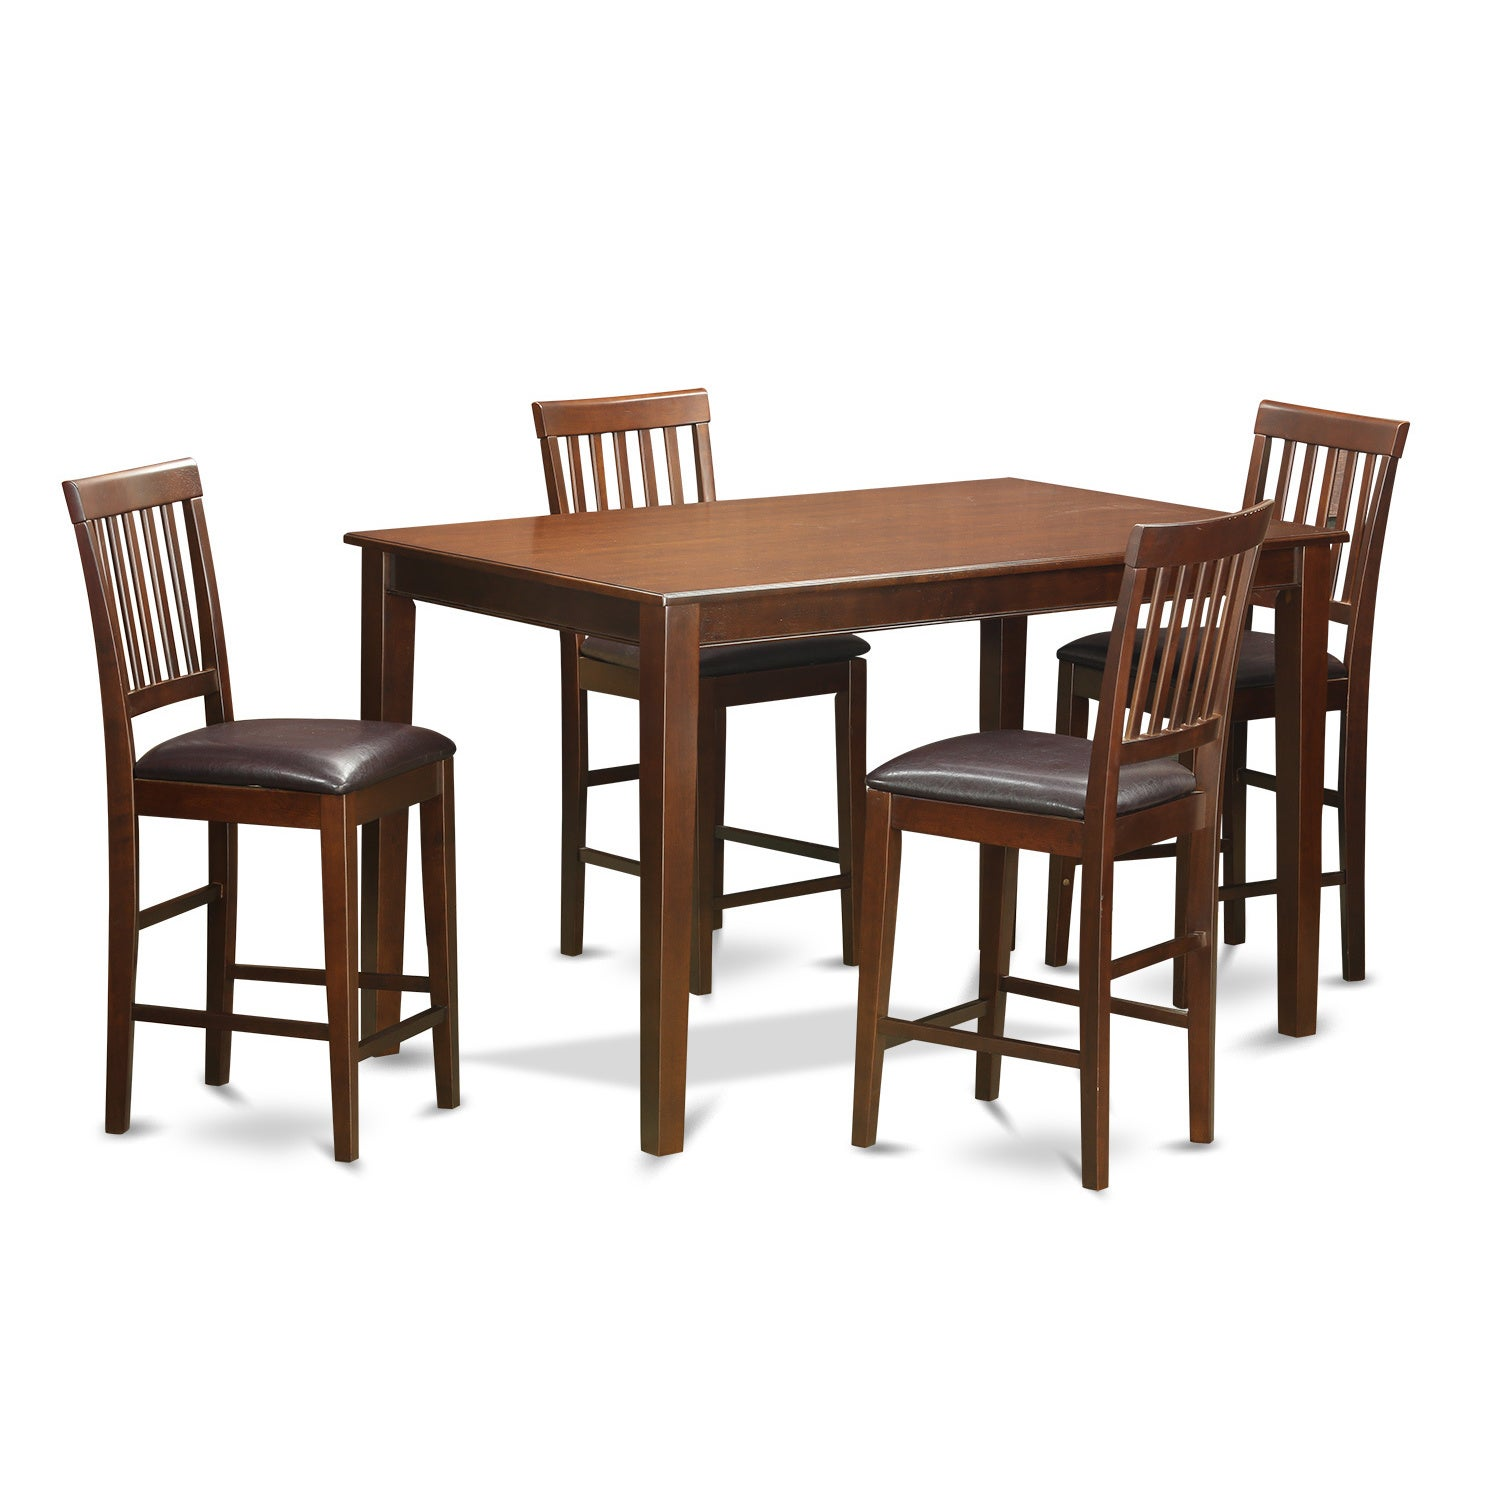 DUVN5H MAH 5 Piece Counter Height Table Set (Faux Leather.